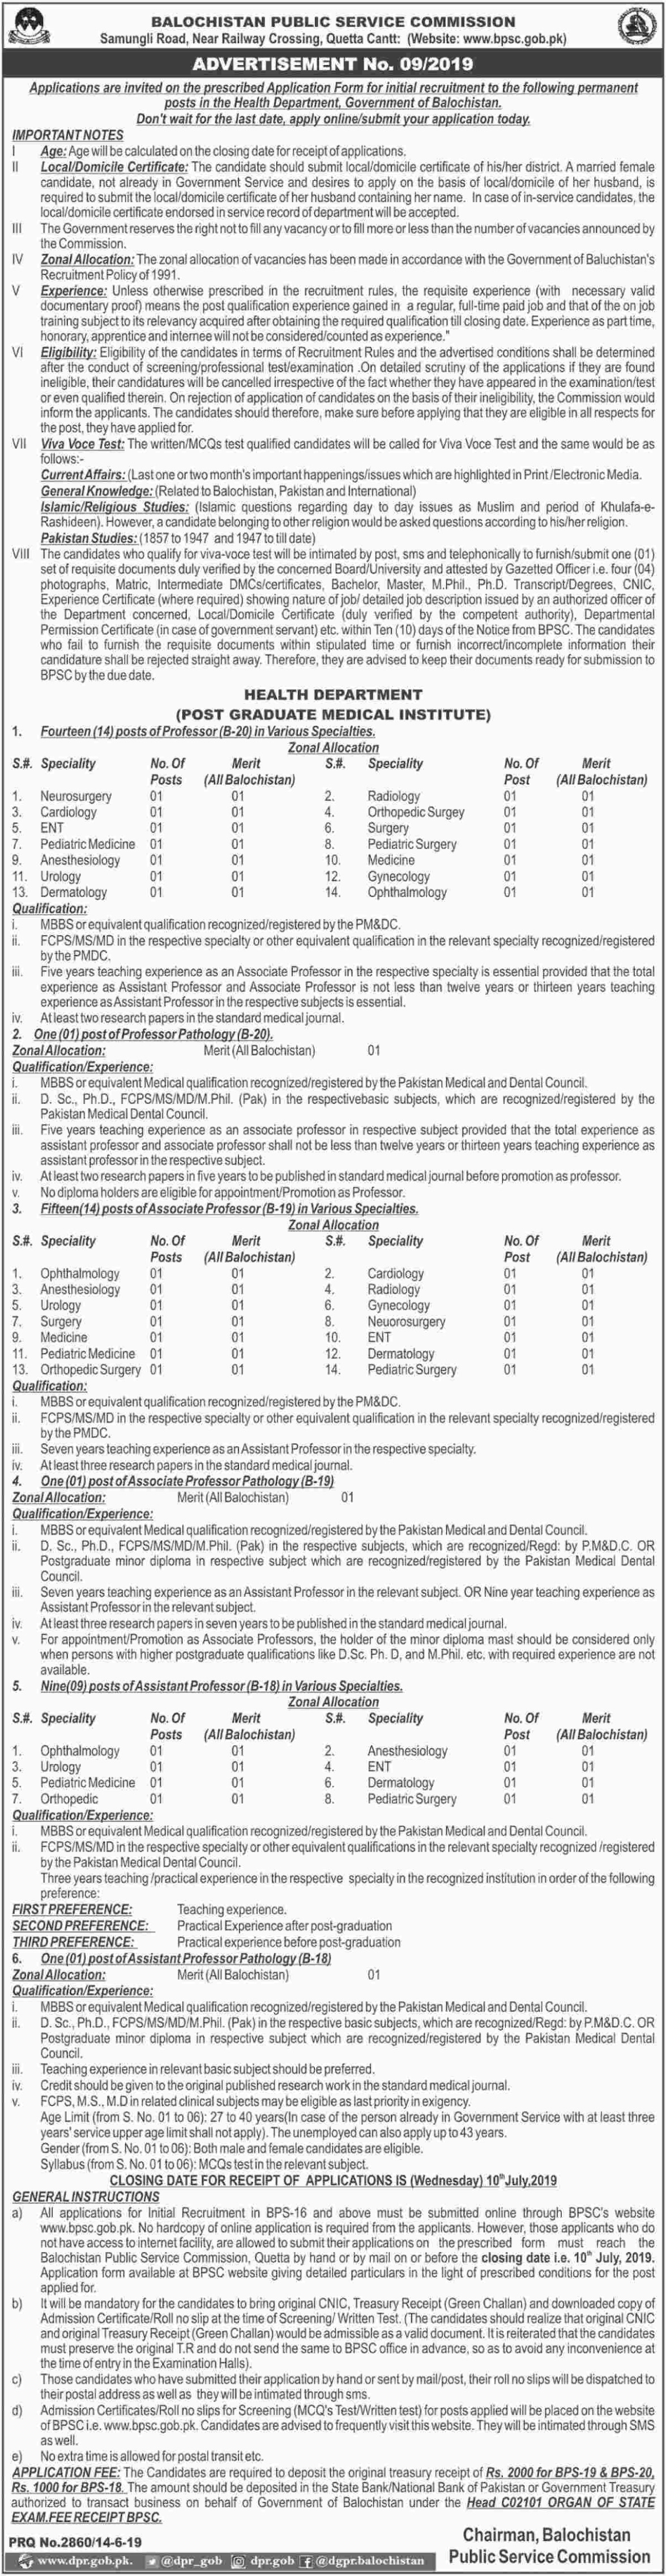 Balochistan Public Service Commission BPSC Jobs 2019 Health Department